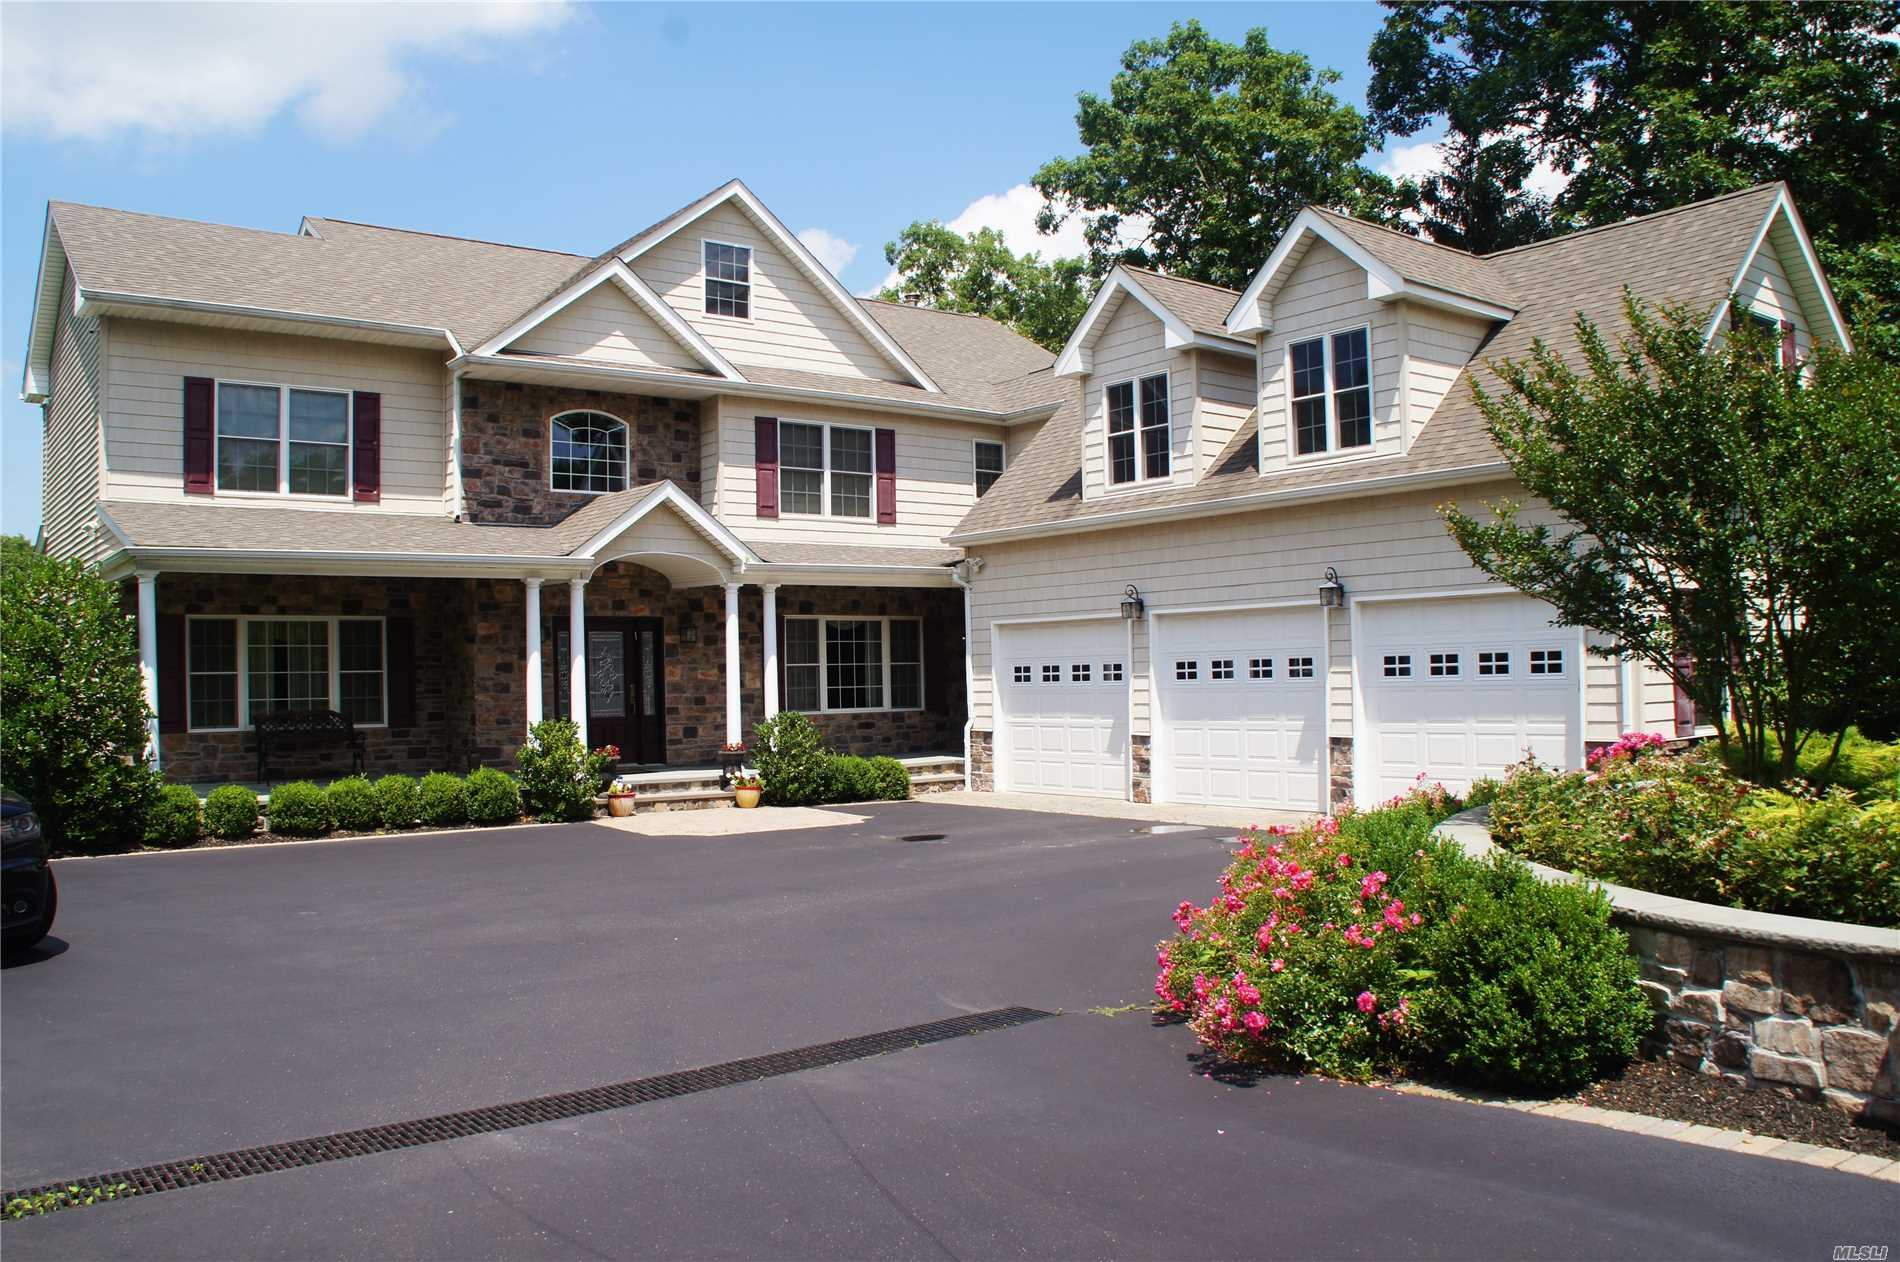 Custom Built Colonial In The Sought After Smithtown Pines Features Stunning 2 Story Entry, Fabulous Gourmet Kitchen With Stainless Steel Appliances, Granite. Den With Custom Fireplace And Built-Ins. 5 Large Bedrooms All With Oversized Closets. Jacuzzi Tub, 1st Floor Guest Suite, Huge Basement With 9' Ceilings And Ose, 3.5 Oversized Garages, Salt Water Pool With Custom Sprinkler Feature, Sport Court And 1.29 Usable Acres - Room For Horses Or Tennis Or Atv! Steps Away From Blydenberg Park.